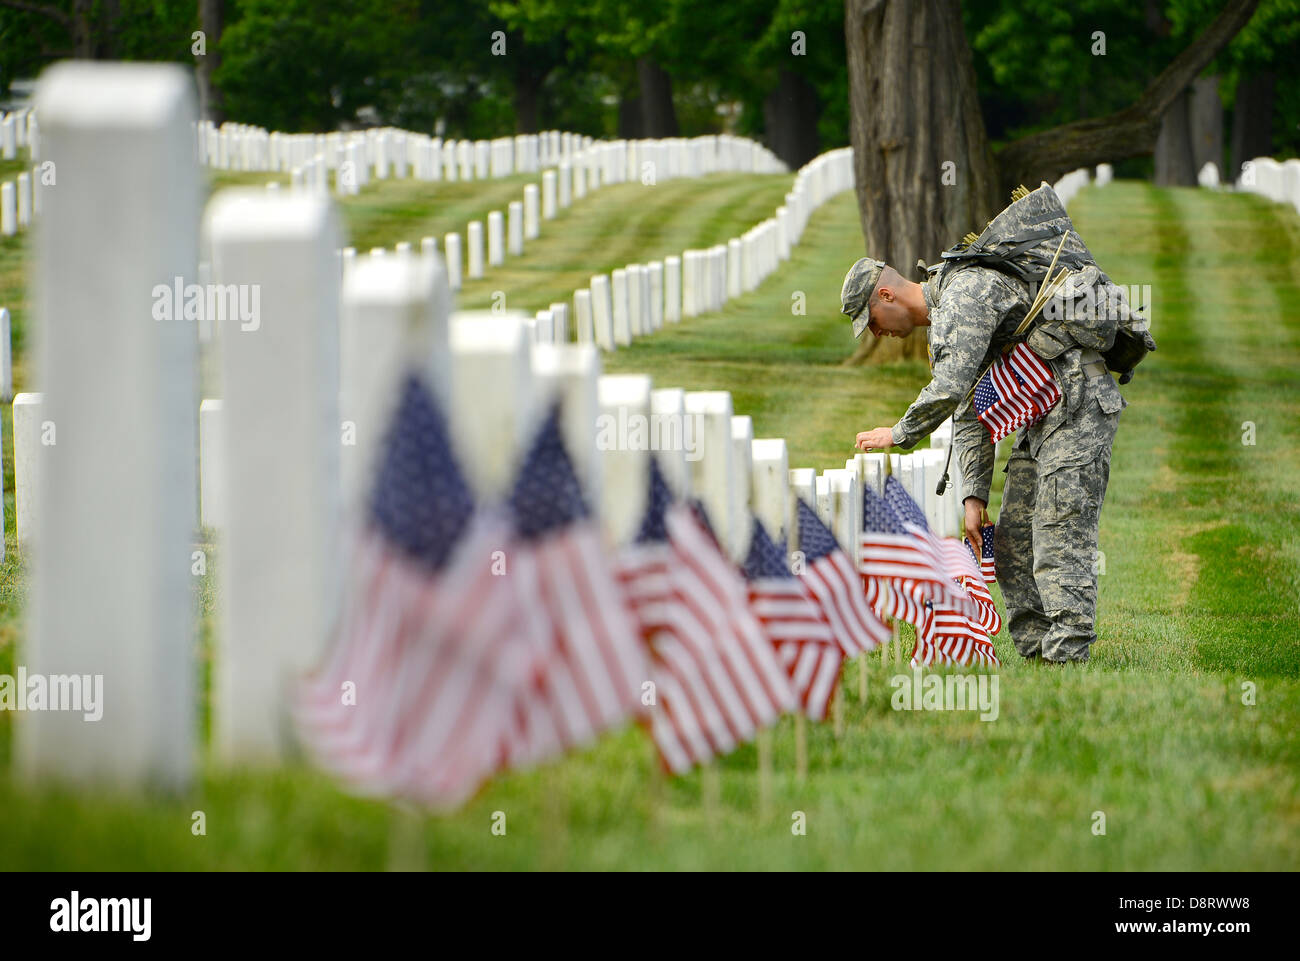 A US soldier with The Old Guard places an American flag in front of a grave stone in Arlington National Cemetery - Stock Image